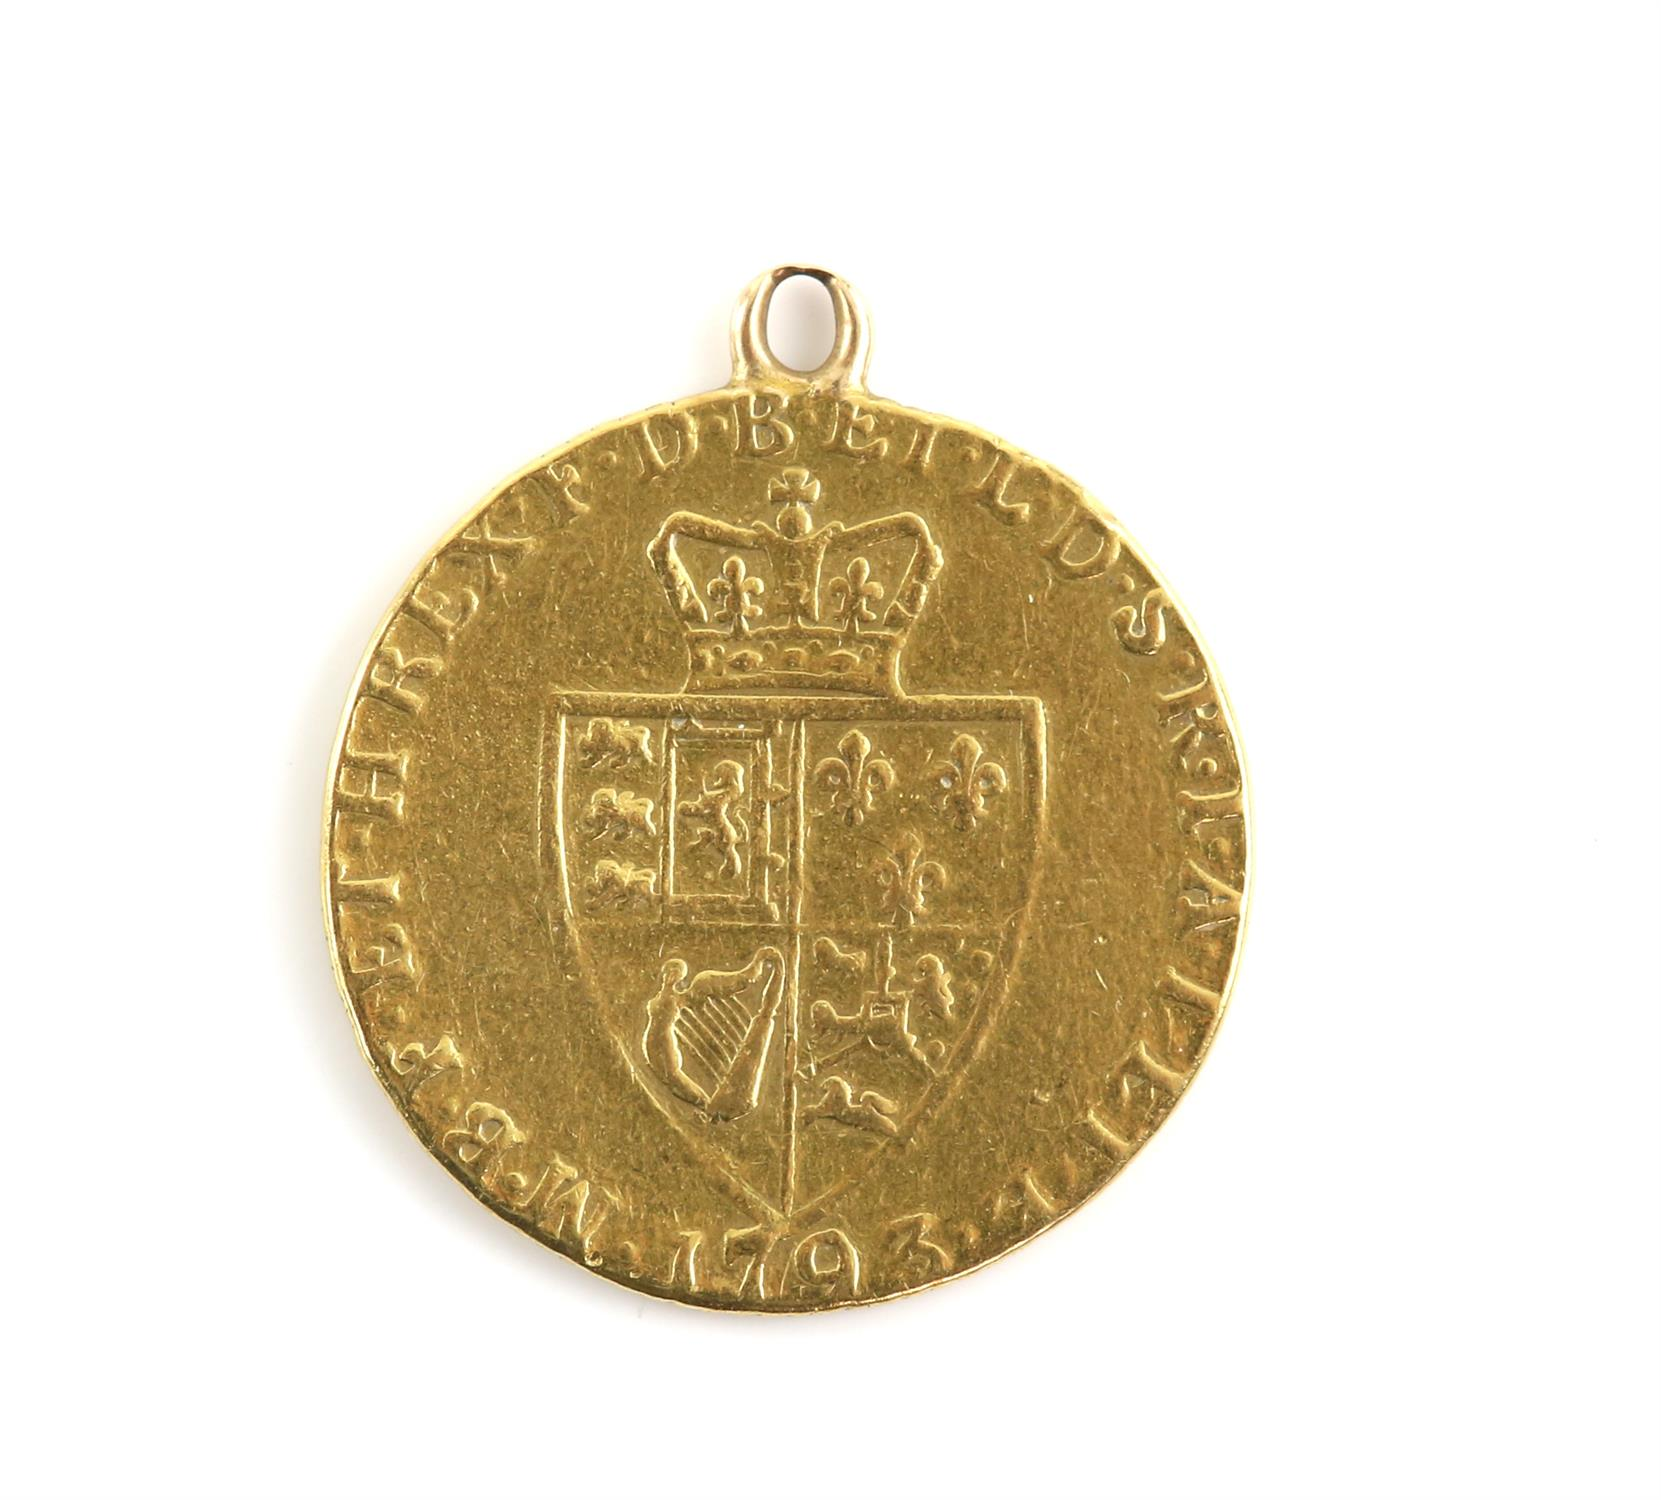 Gold coin pendant, a George III, 1793 Guinea gold coin, featuring the 5th laureate head George III